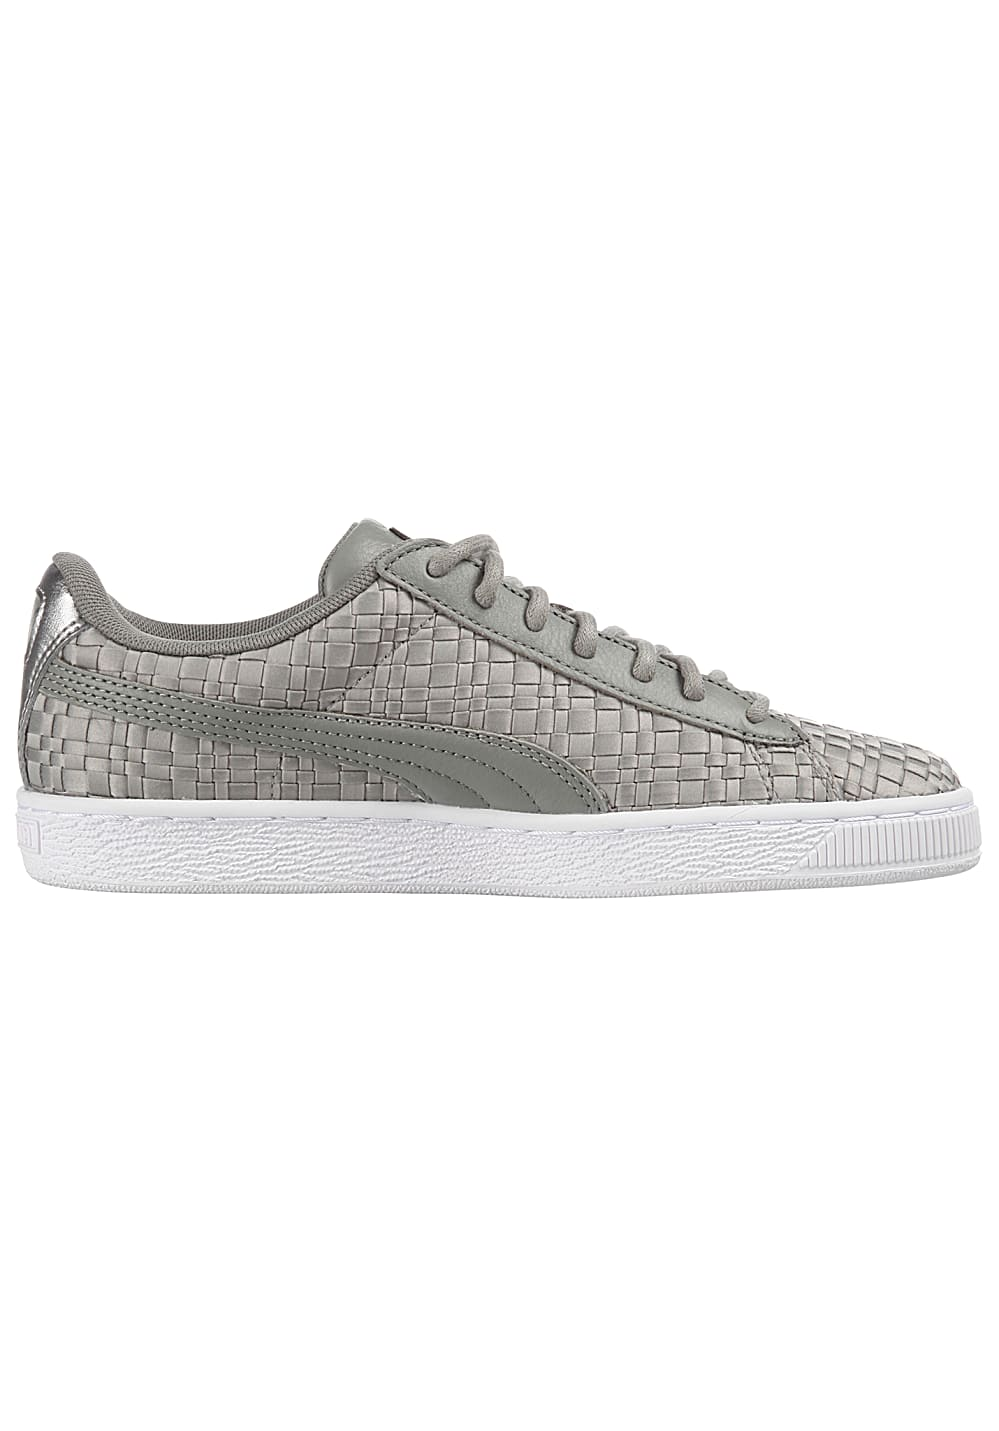 new style 7eaf6 f8599 Puma Basket Satin En Pointe - Sneakers for Women - Grey